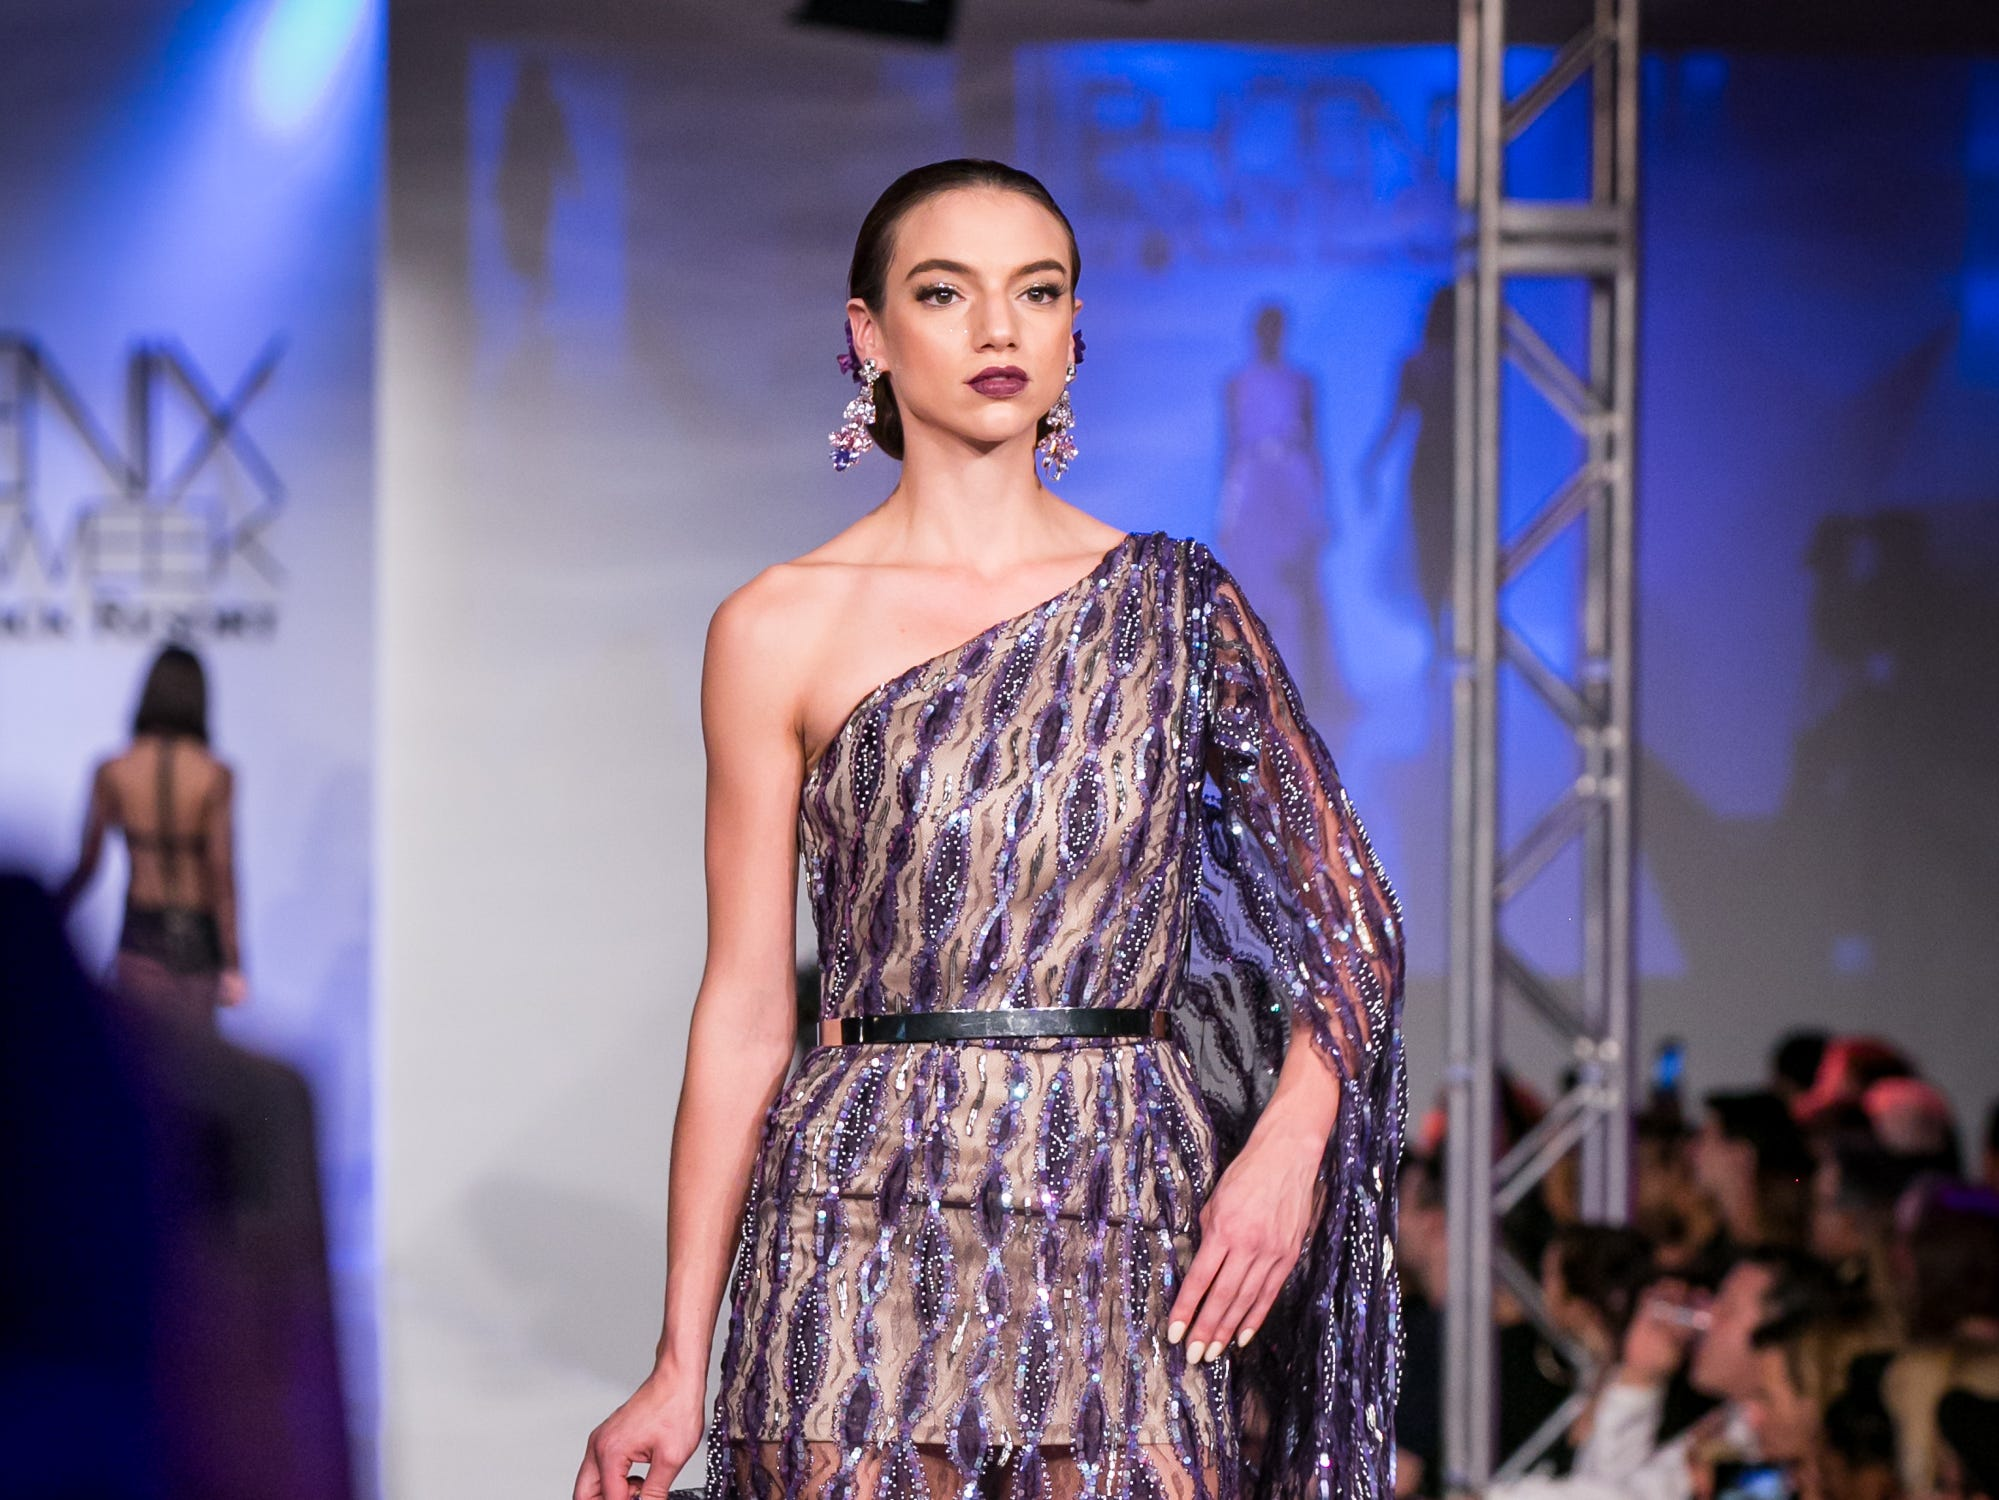 Christine Adar's runway during Phoenix Fashion Week at Talking Stick Resort in Scottsdale on Saturday, October 20, 2018.